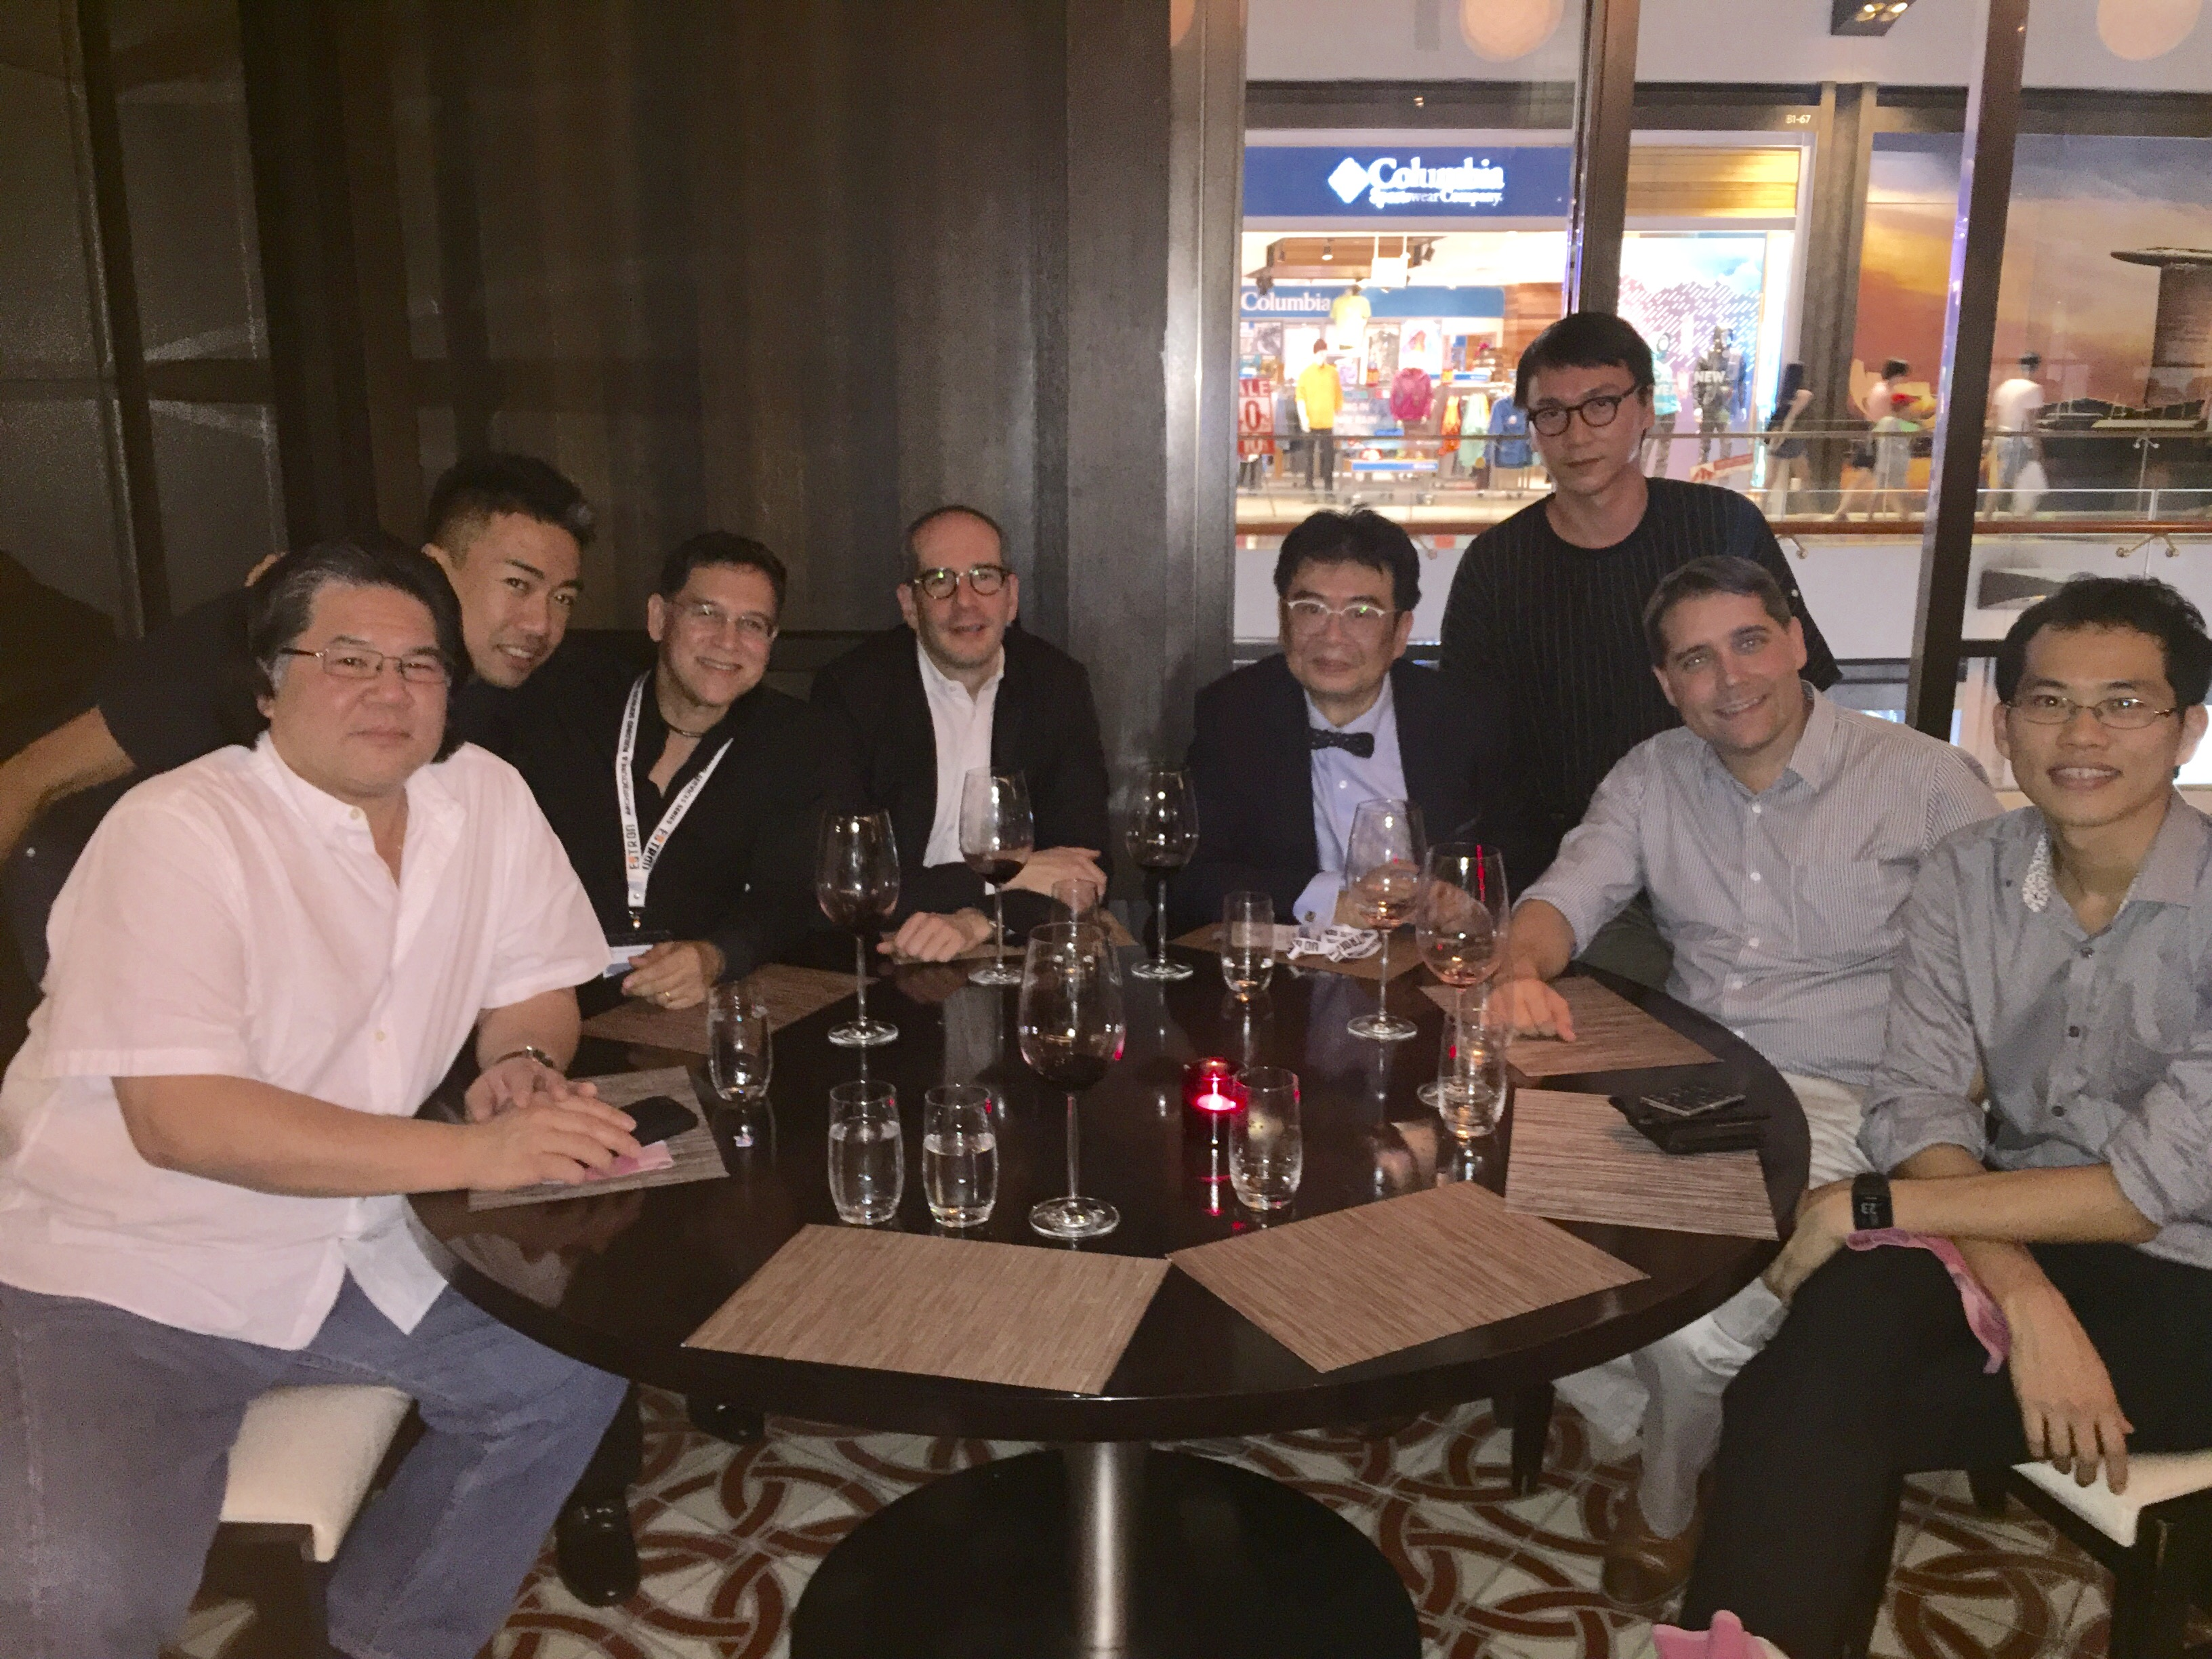 Fall GSD ASEAN Alumni Reunion in Singapore with Felipe Correa MAUD '03, associate professor in the Department of Urban Planning and Design (fourth from left).